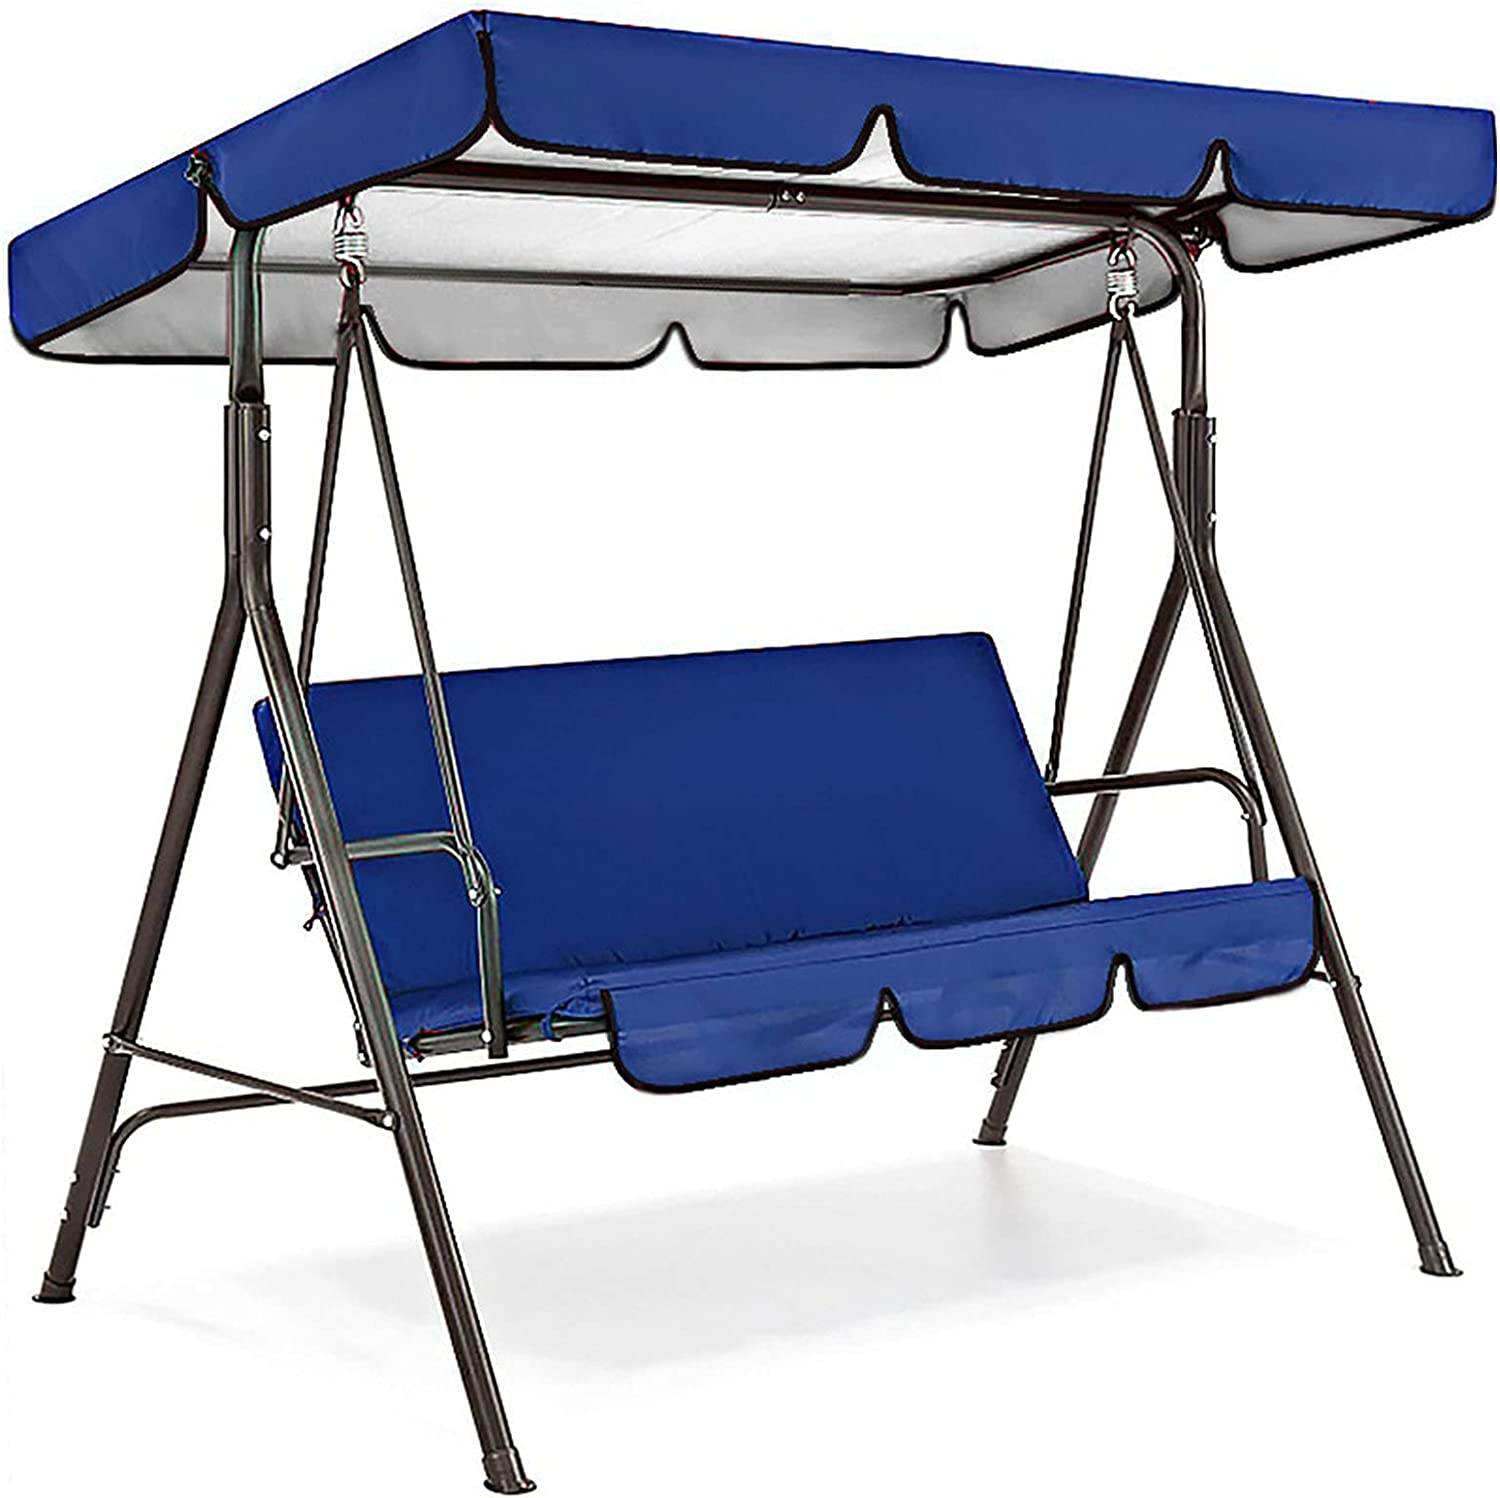 Patio Swing Canopy Waterproof Top Cover Set, Replacement Canopy Cover for Swing Chair Awning Glider 2/3-Seater, Outdoor Garden Furniture Covers All Weather Protection (Blue, Three-Seater)